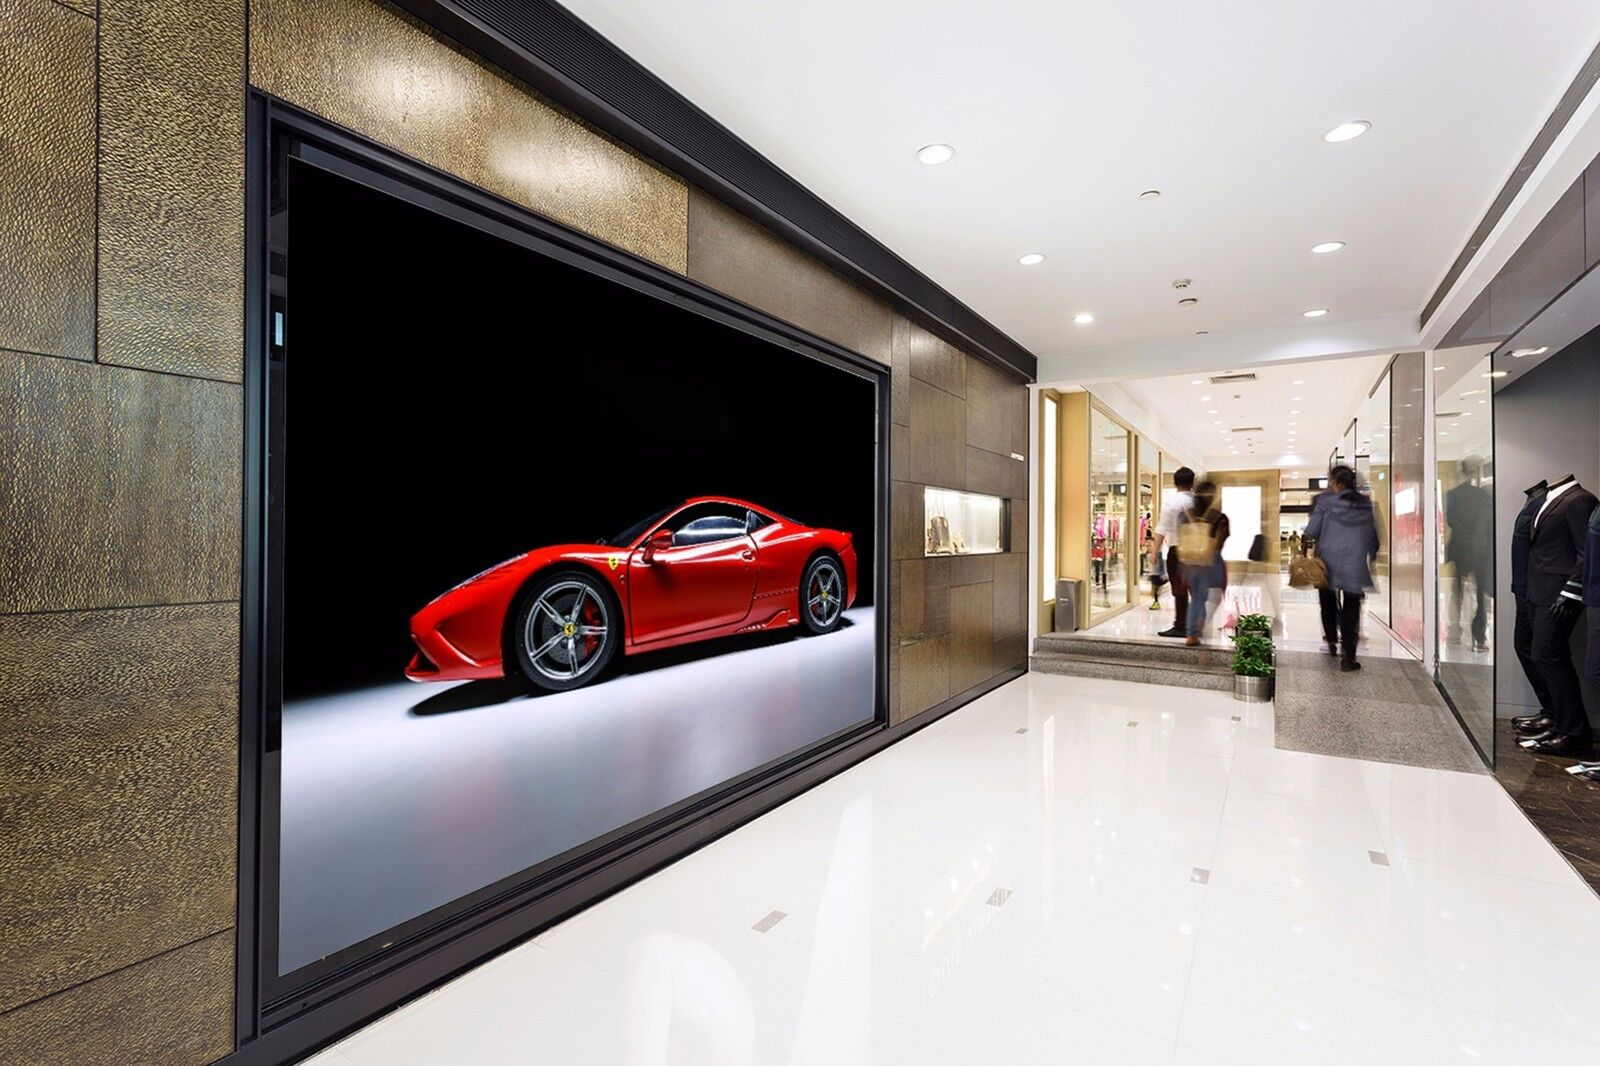 3D ROT sports car 243 Wall Paper Wall Print Decal Wall Deco Indoor Wall Murals